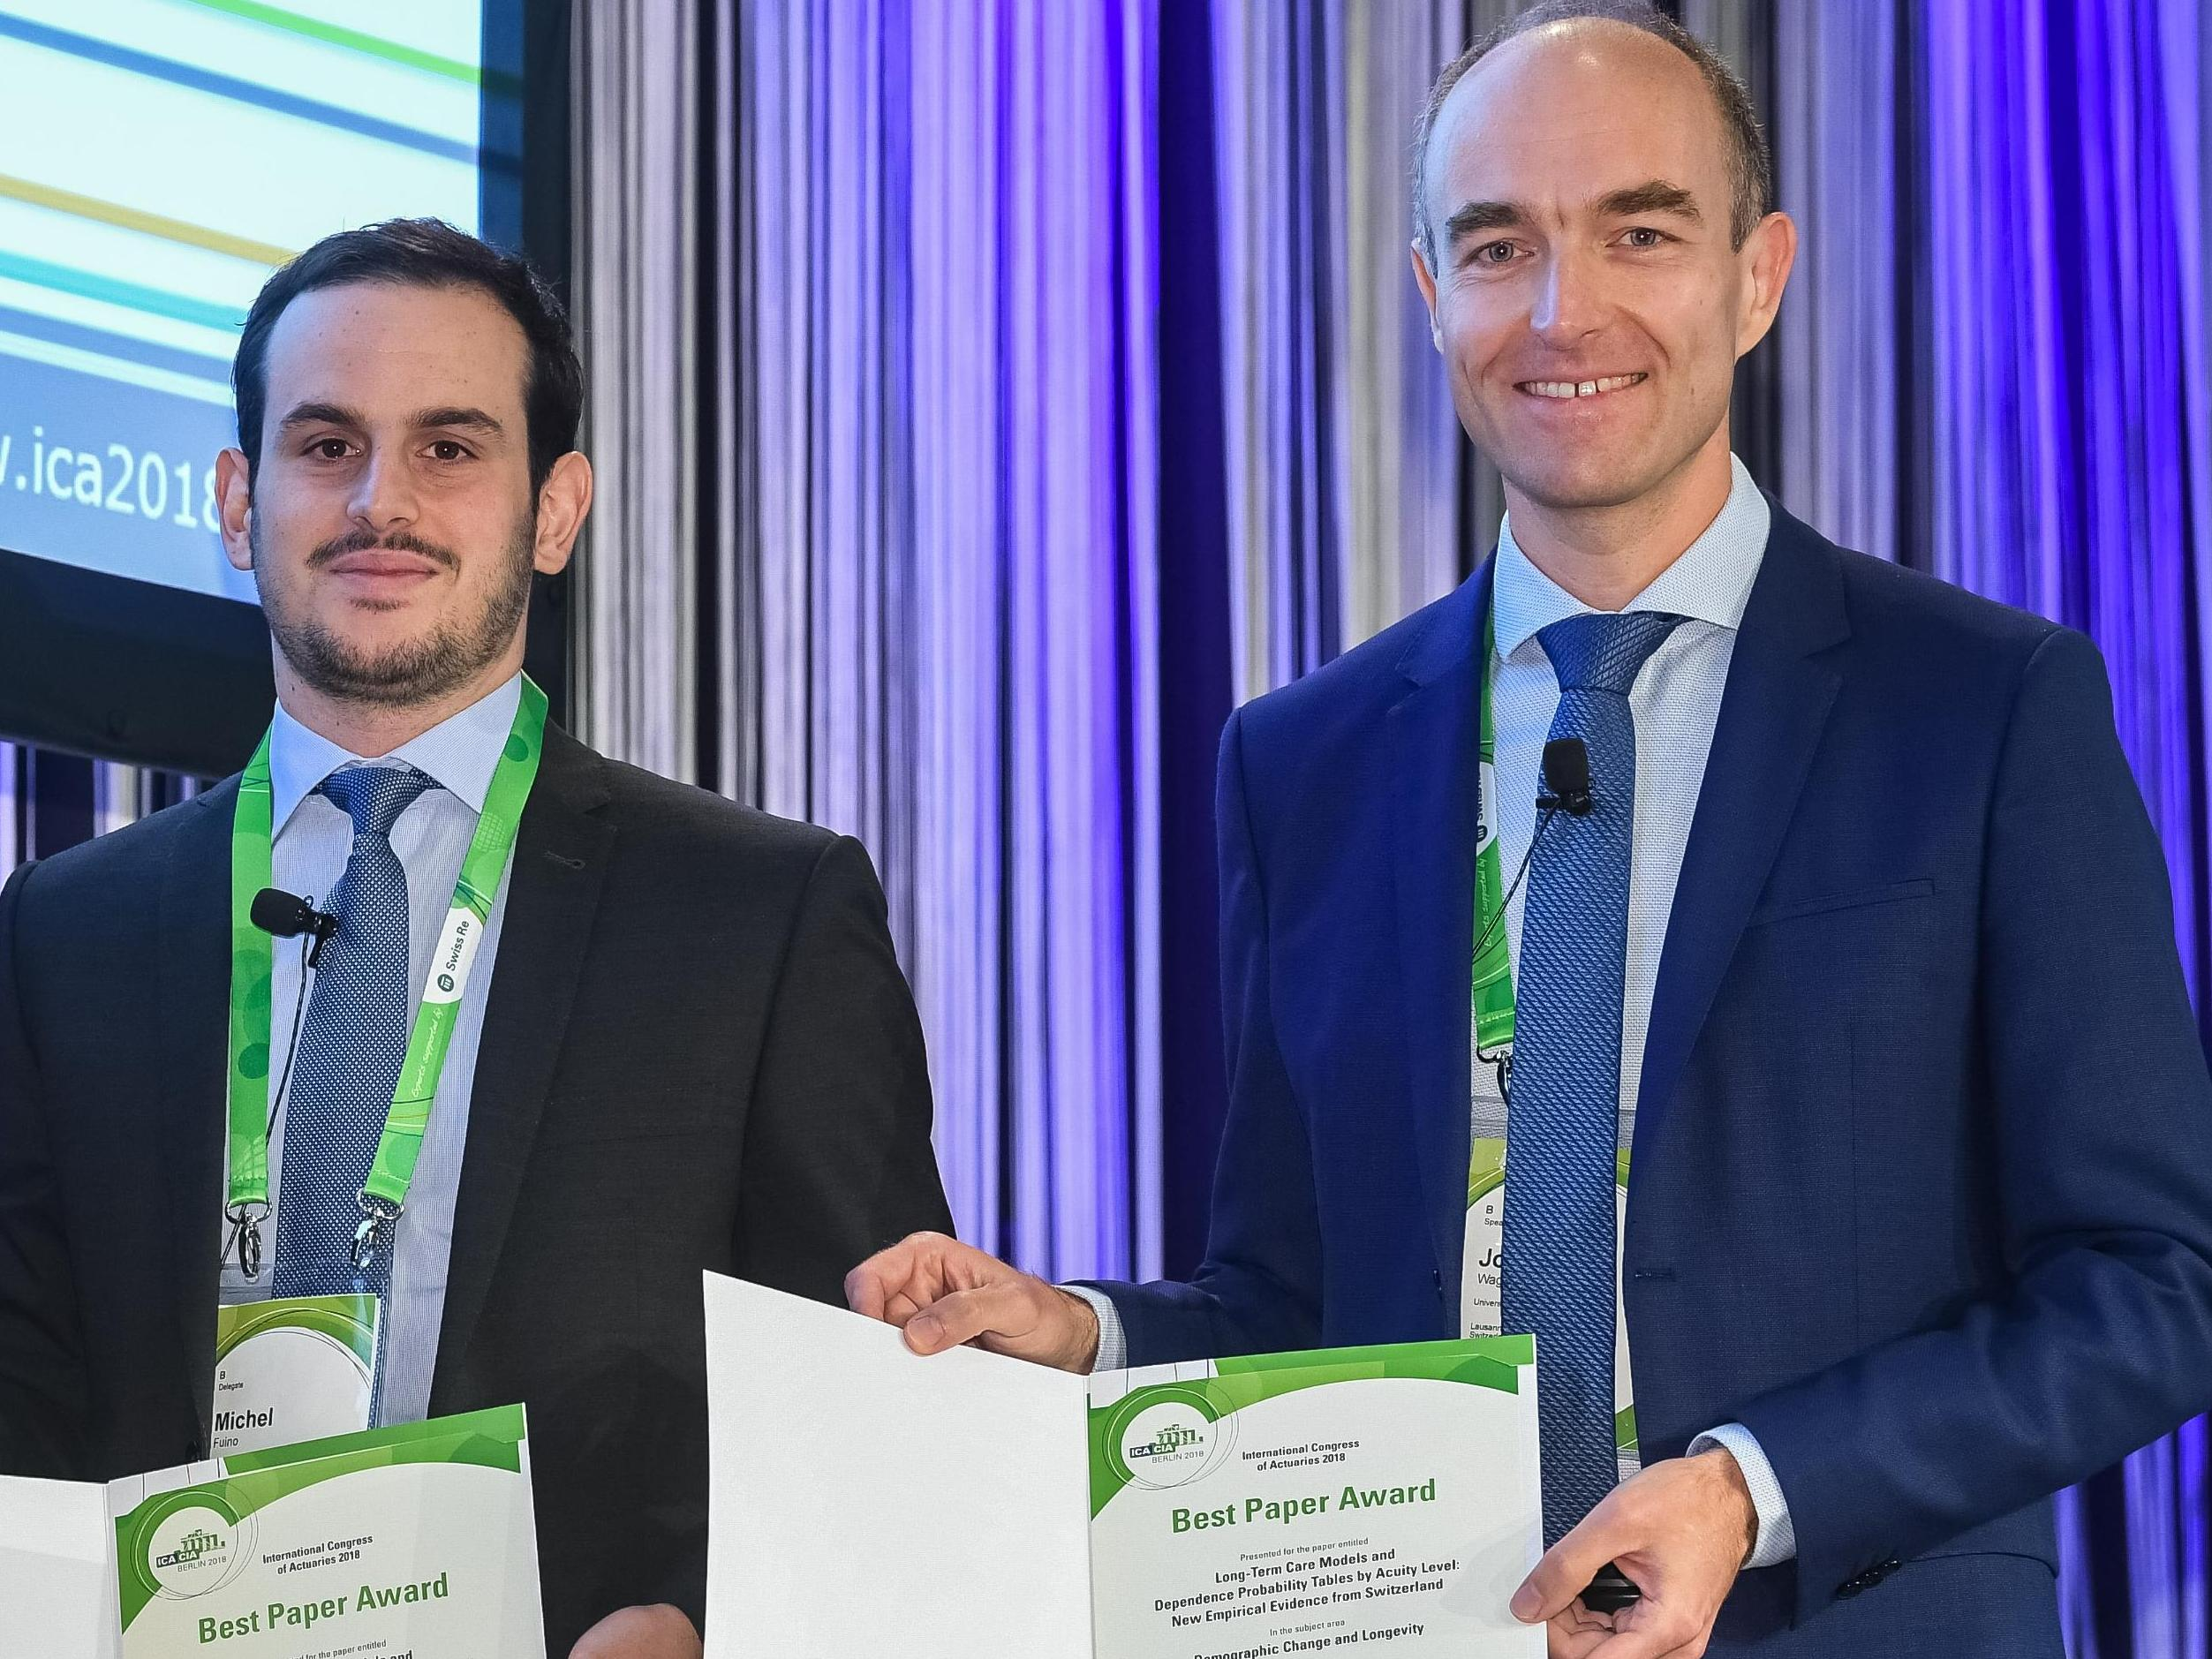 Actuarial Science: Joël Wagner and Michel Fuino received the Best Paper Award at the ICA Congress 2018